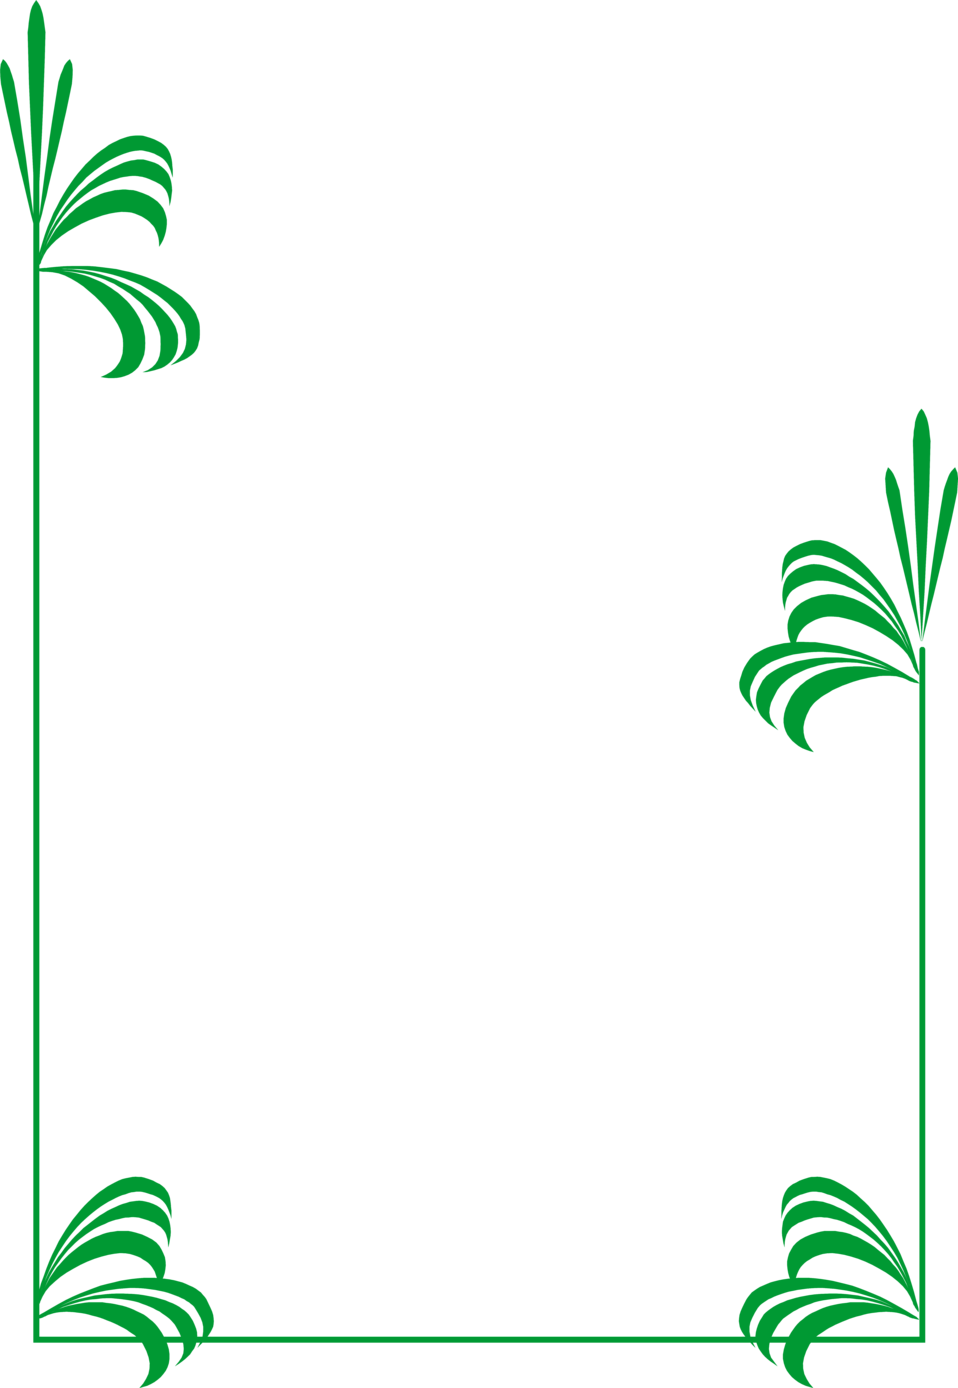 Images of leaves clipart. Green border png